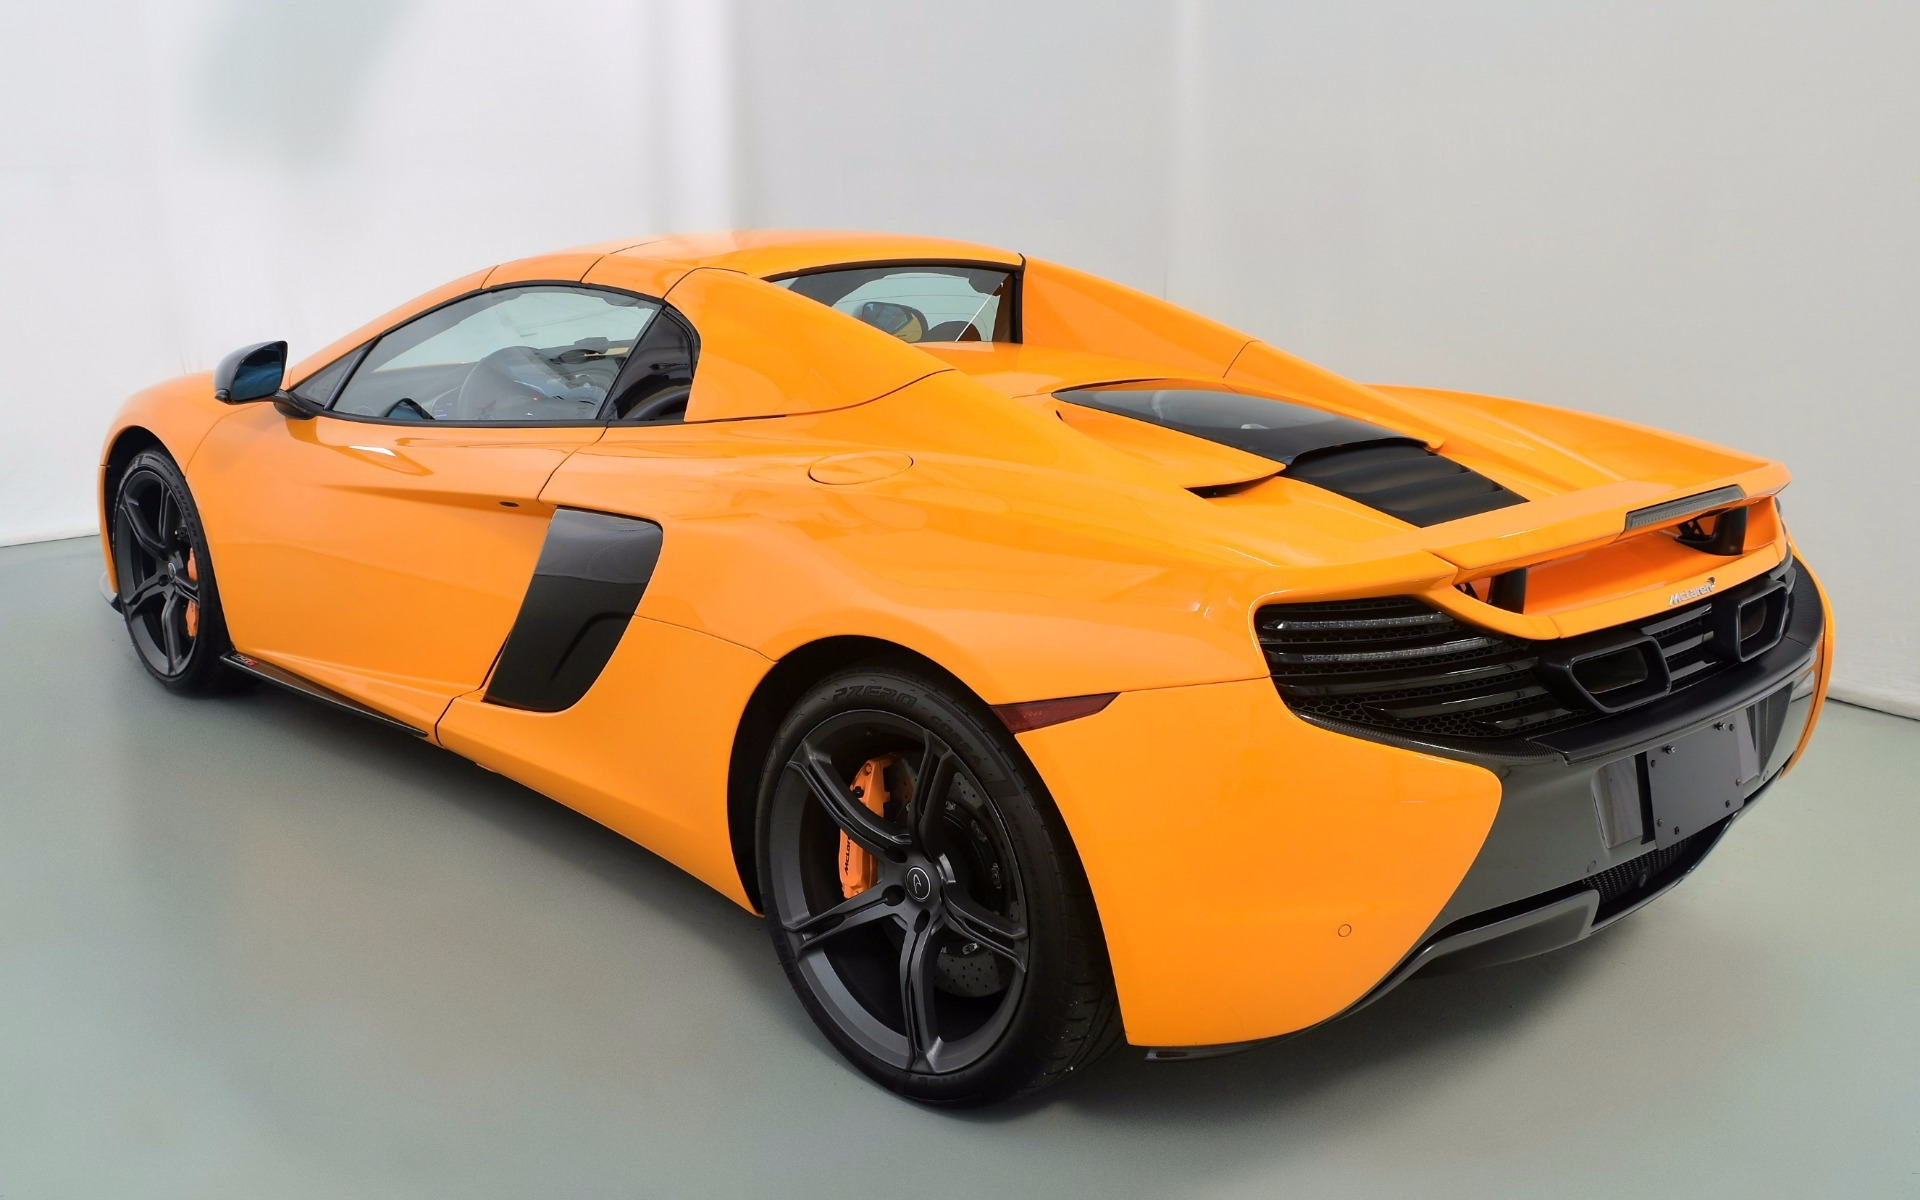 2016 mclaren 650s spider for sale in norwell ma 005992. Black Bedroom Furniture Sets. Home Design Ideas